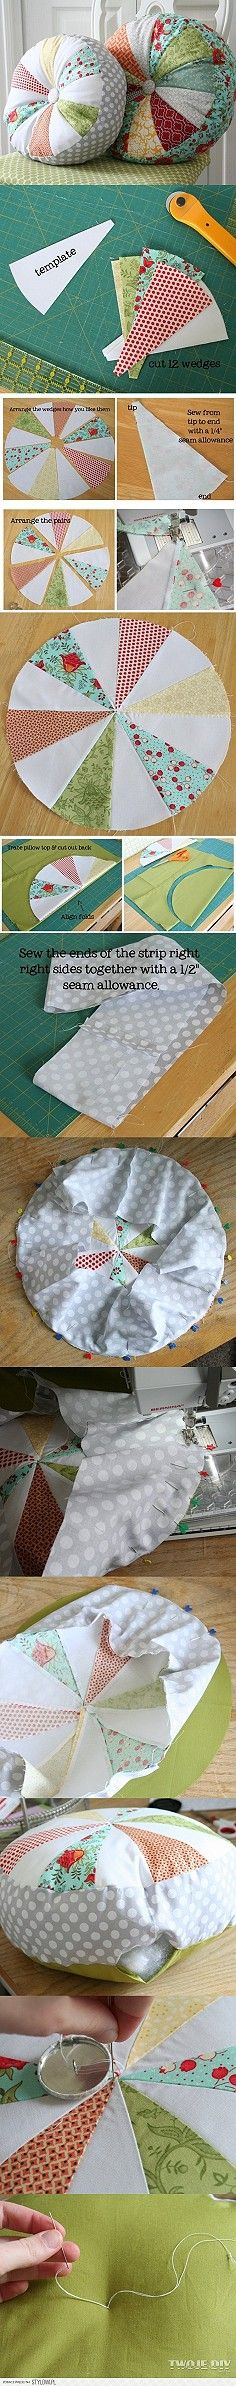 Excellent DIY Pictorial on how to make a quilted old-fashioned pillow! Sewing Hacks, Sewing Tutorials, Sewing Crafts, Sewing Projects, Projects To Try, Tie Crafts, Diy And Crafts, Creation Couture, Sewing Pillows